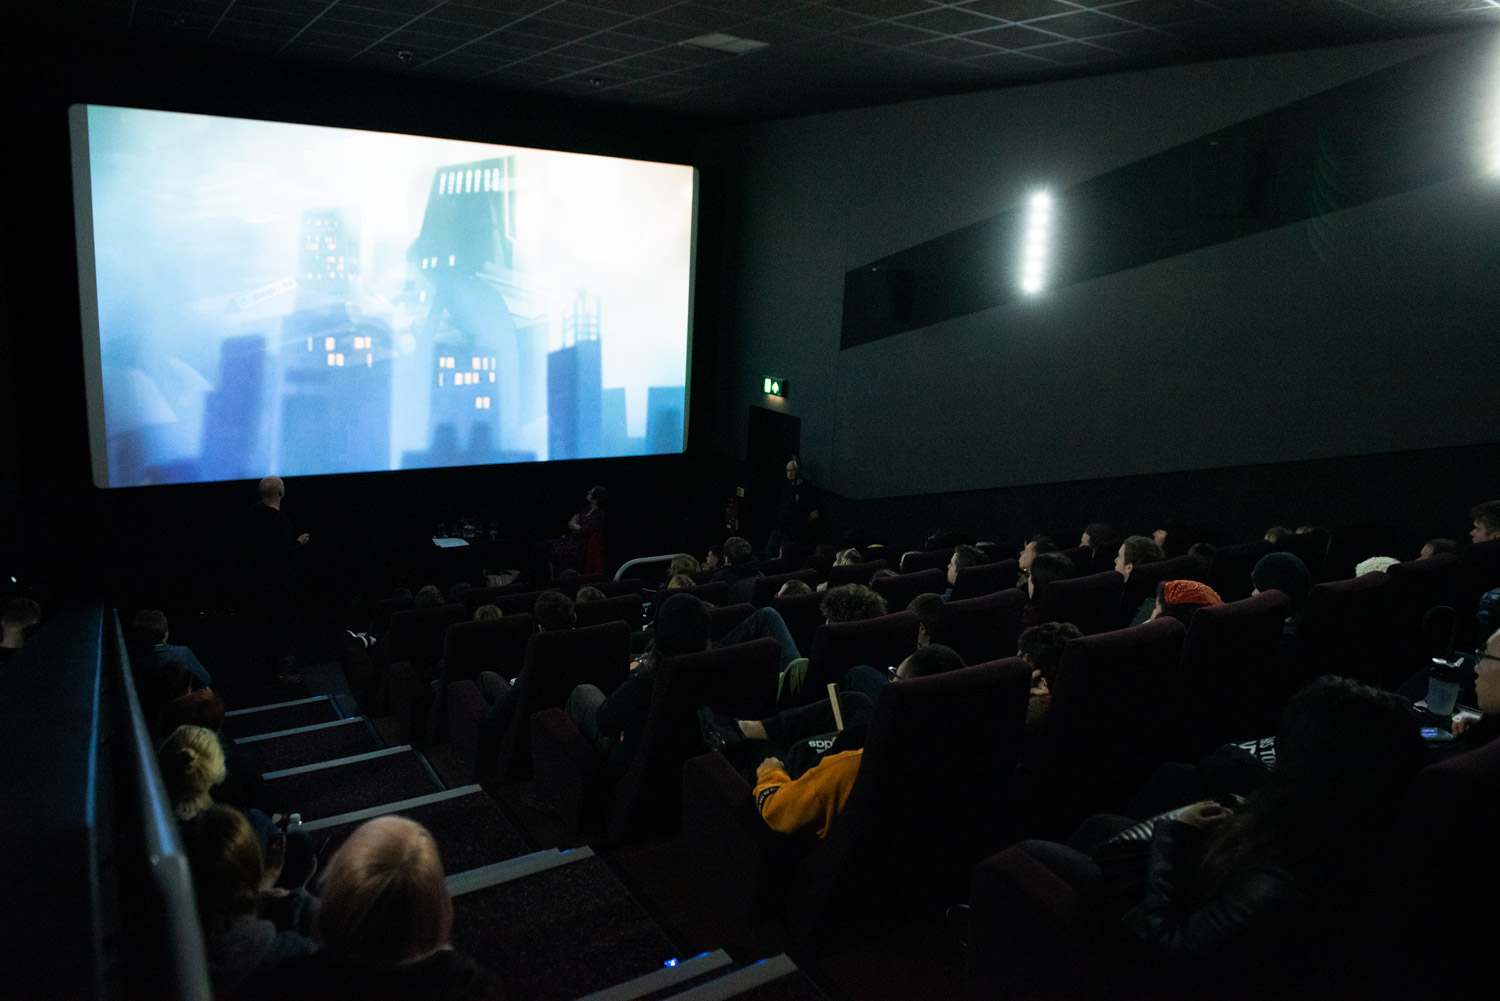 Screening of an animated short film at the Light Cinema